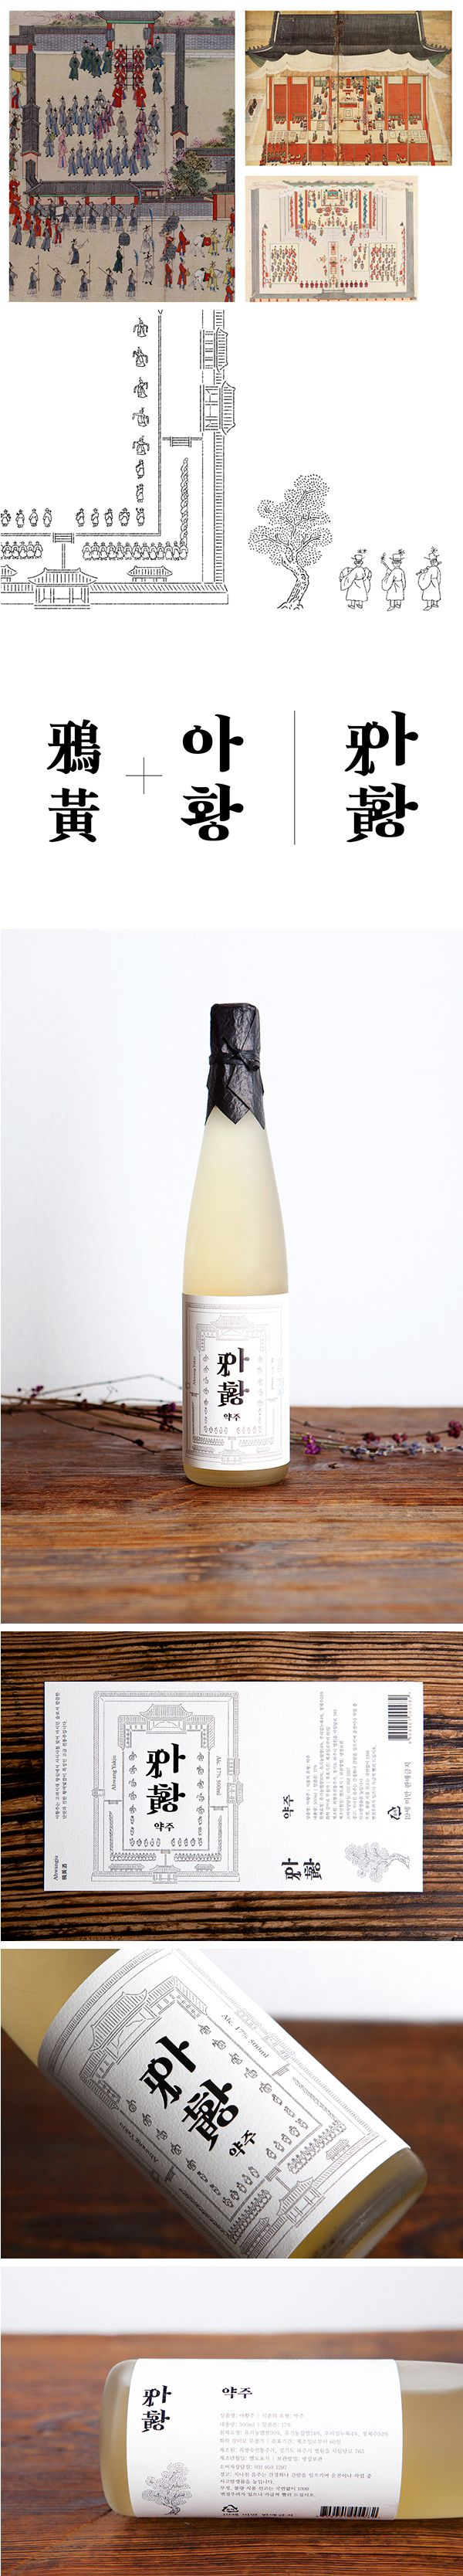 South Korean rice wine packaging - A-Hwang ju Designed by ContentFormContext